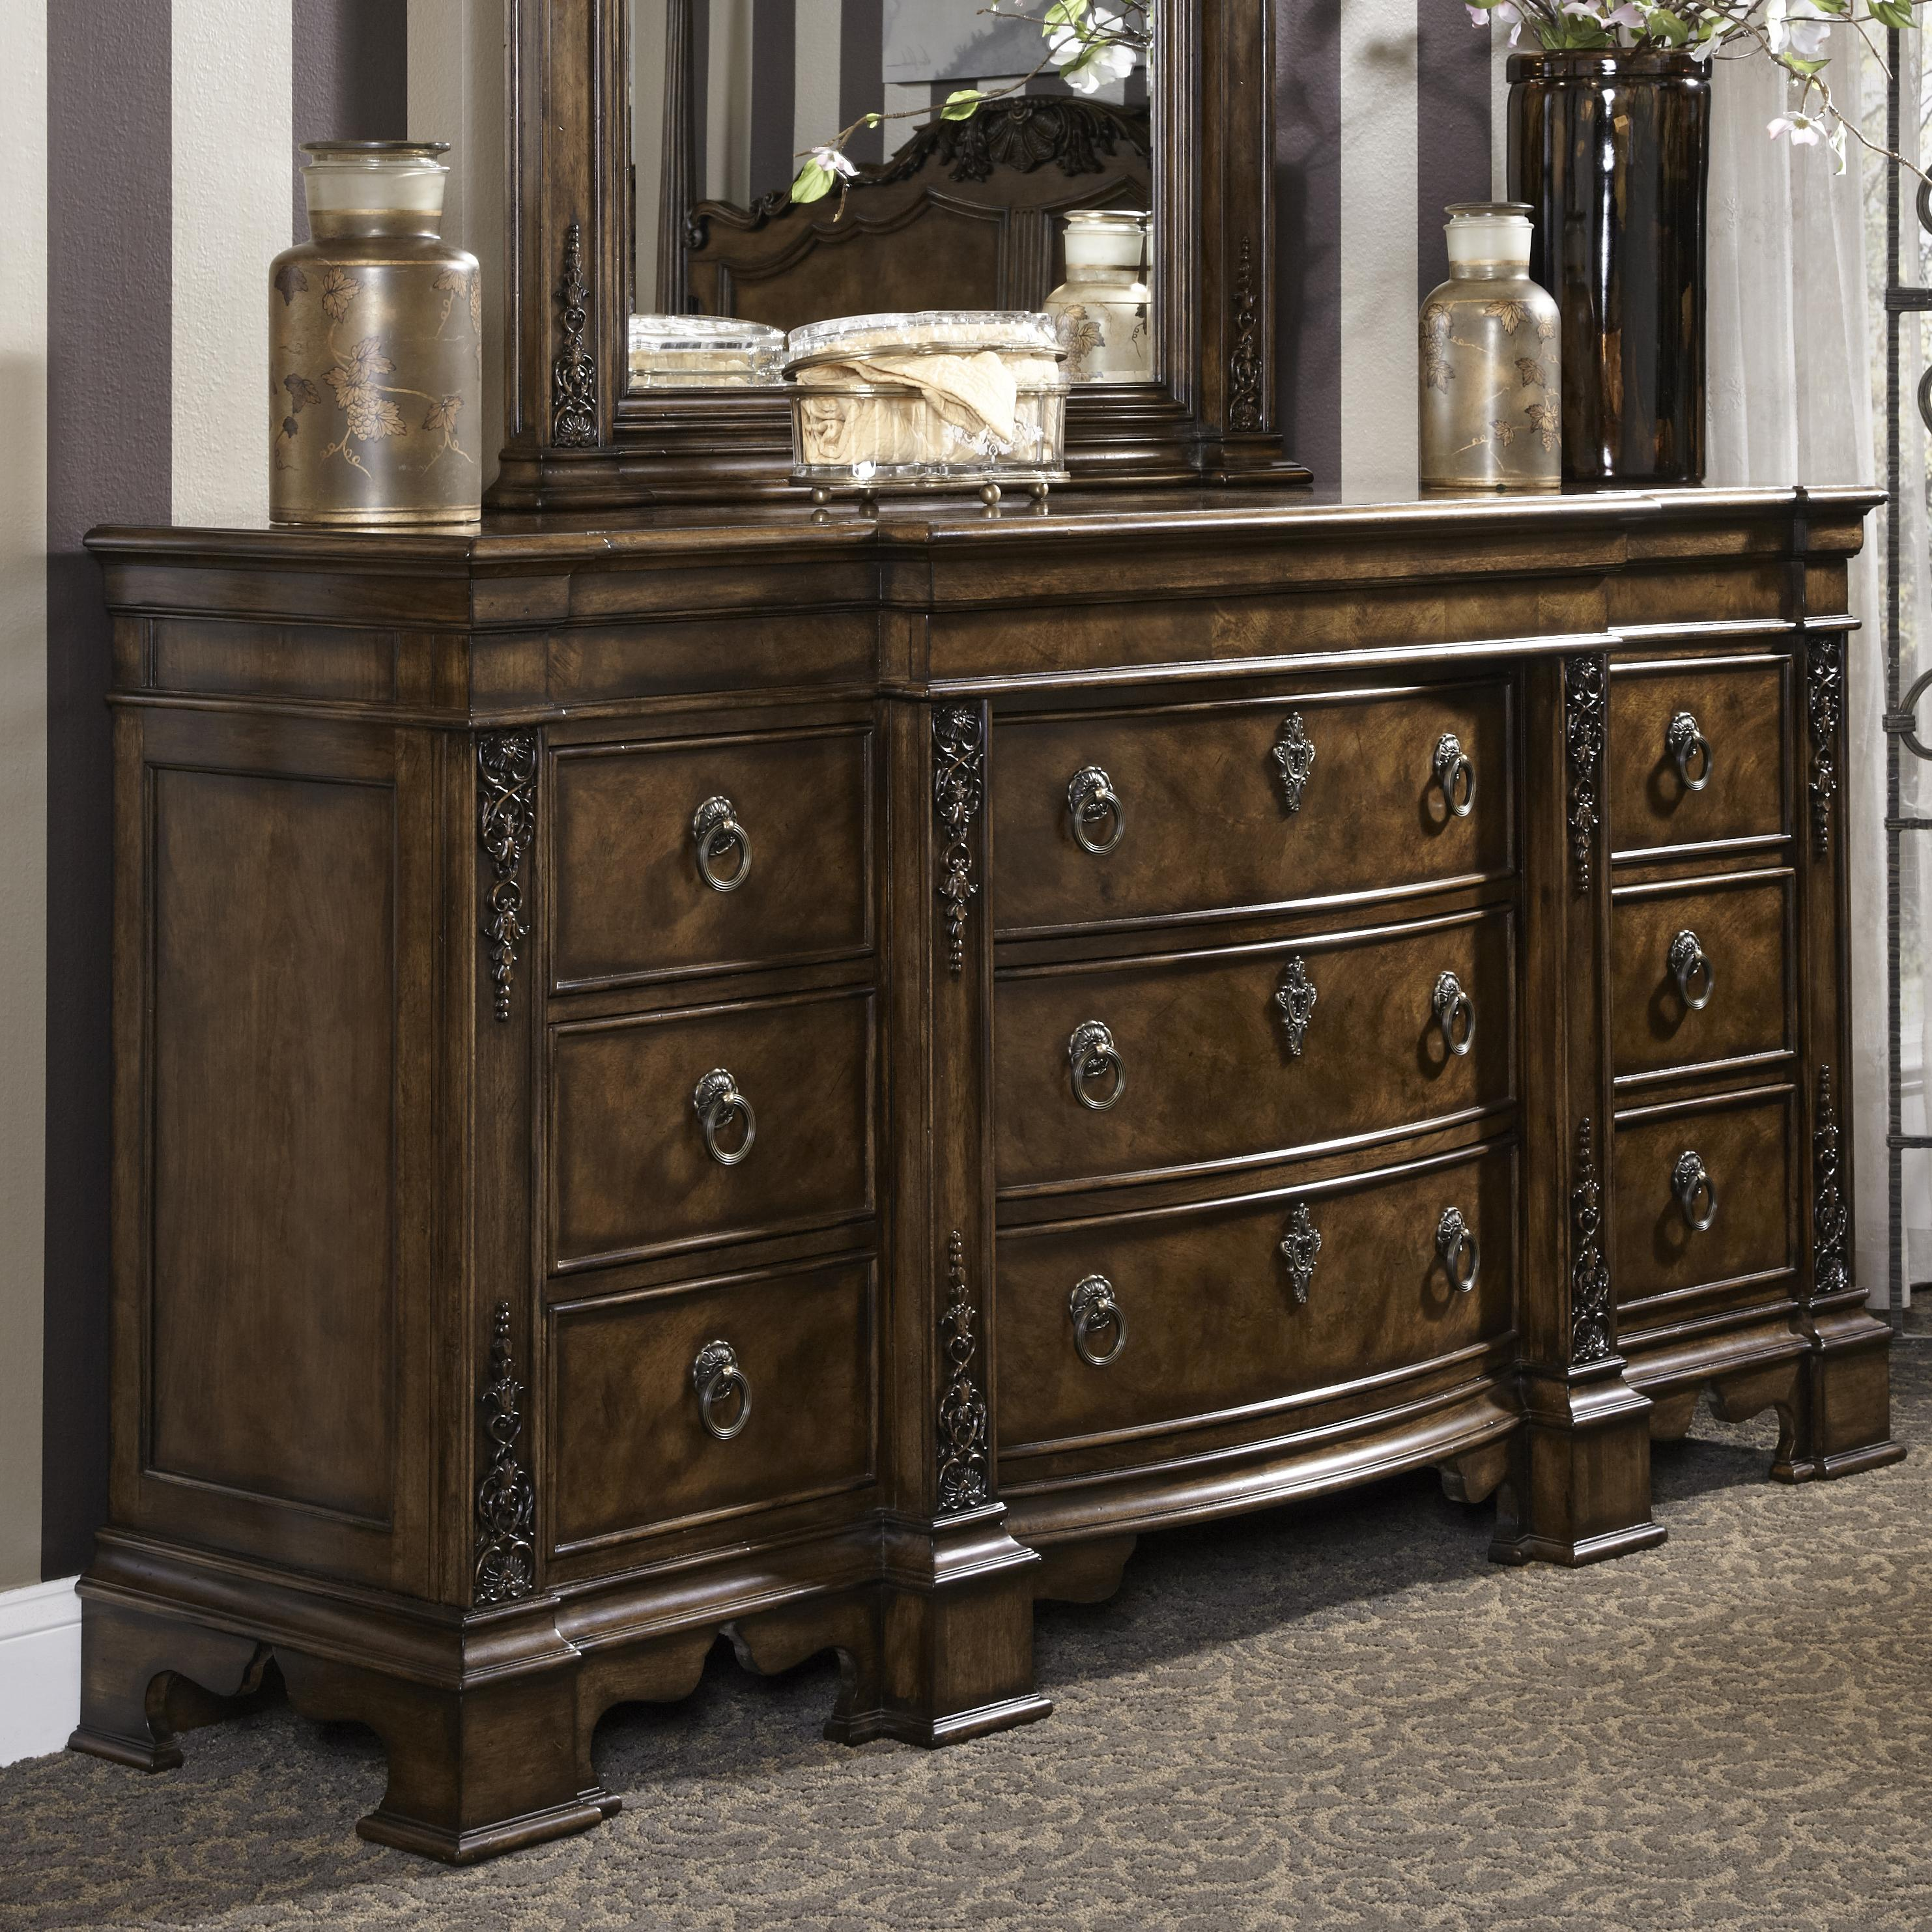 Traditional Dresser With Nine Drawers Including Hidden